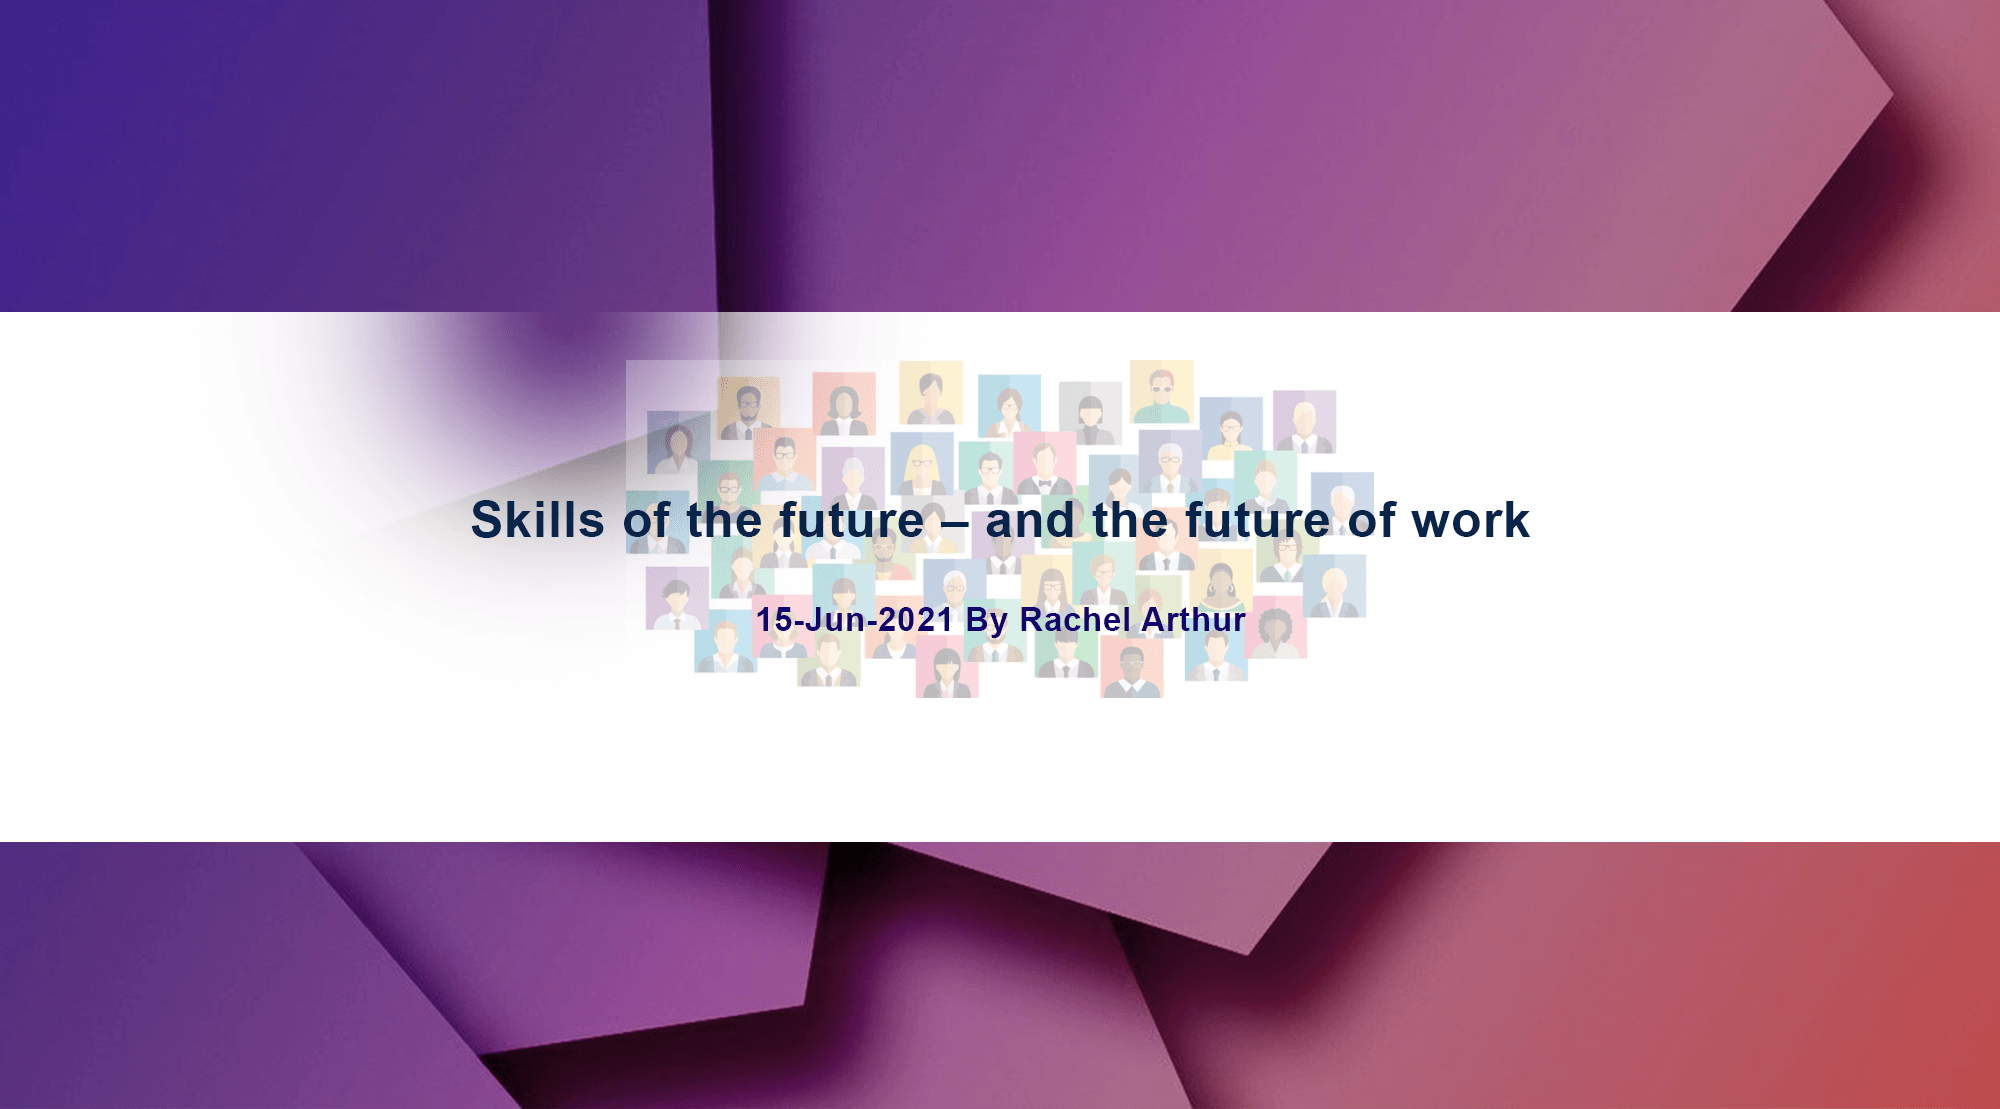 Skills of the future – and the future of work